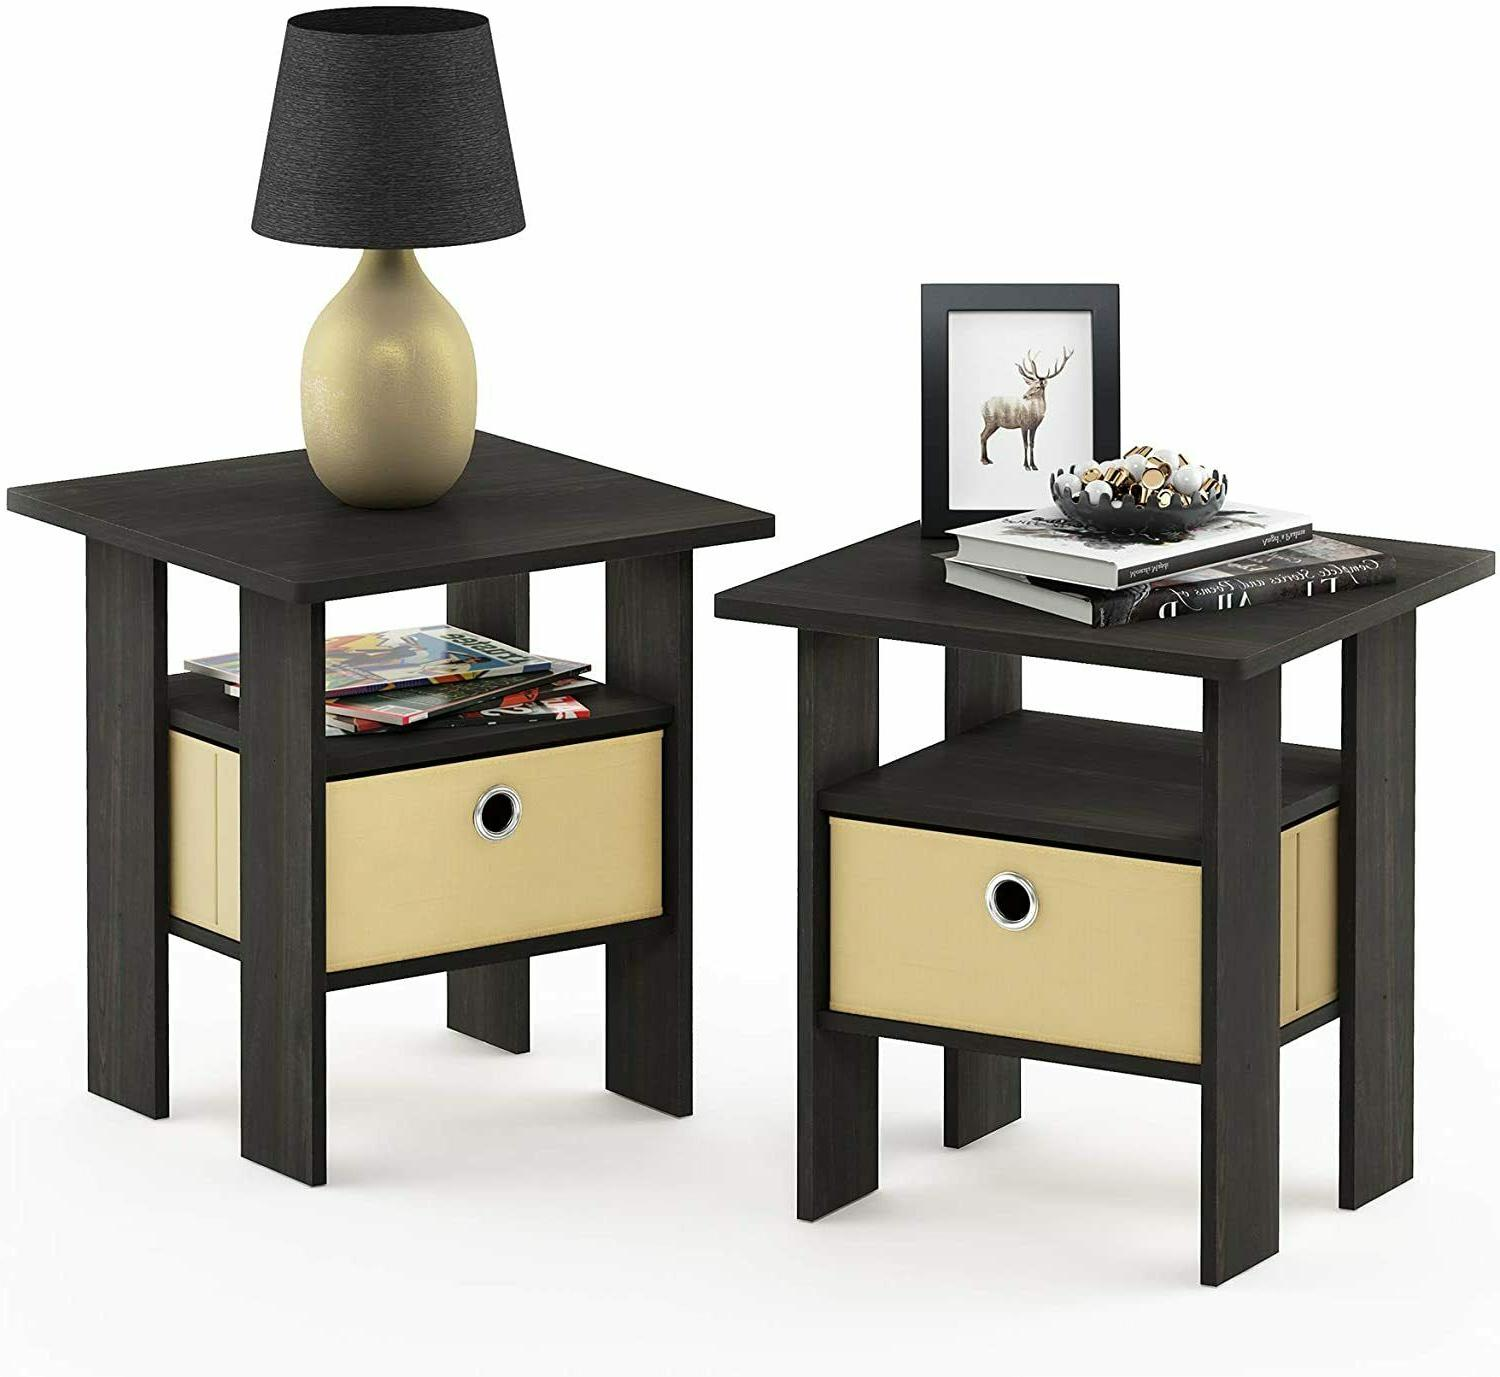 Furinno End Table Bedroom Night Stand, Espresso, Set of 2